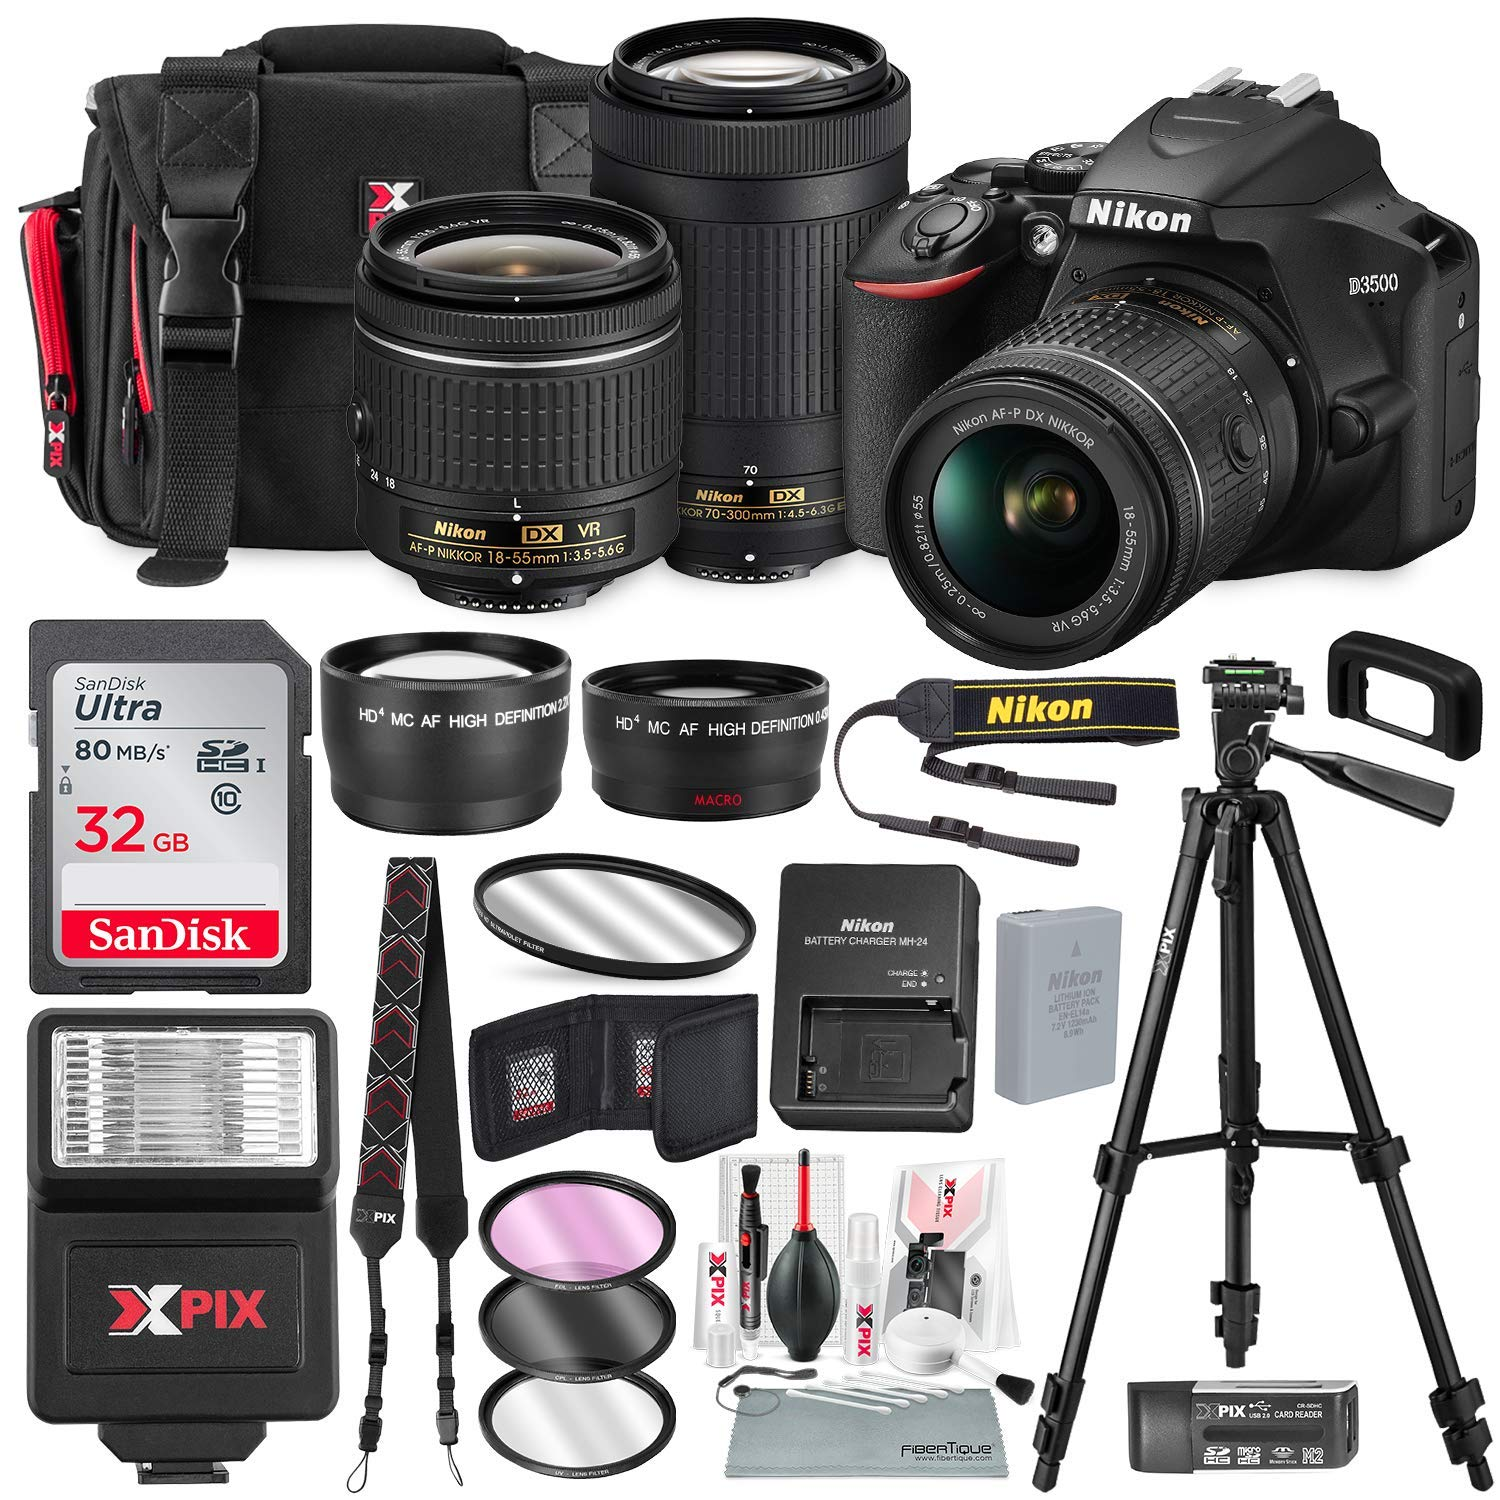 Nikon D3500 DSLR Camera with 18-55mm and 70-300mm Lenses + 32GB Card, Tripod, Flash, and Bundle by Photo Savings (Image #1)